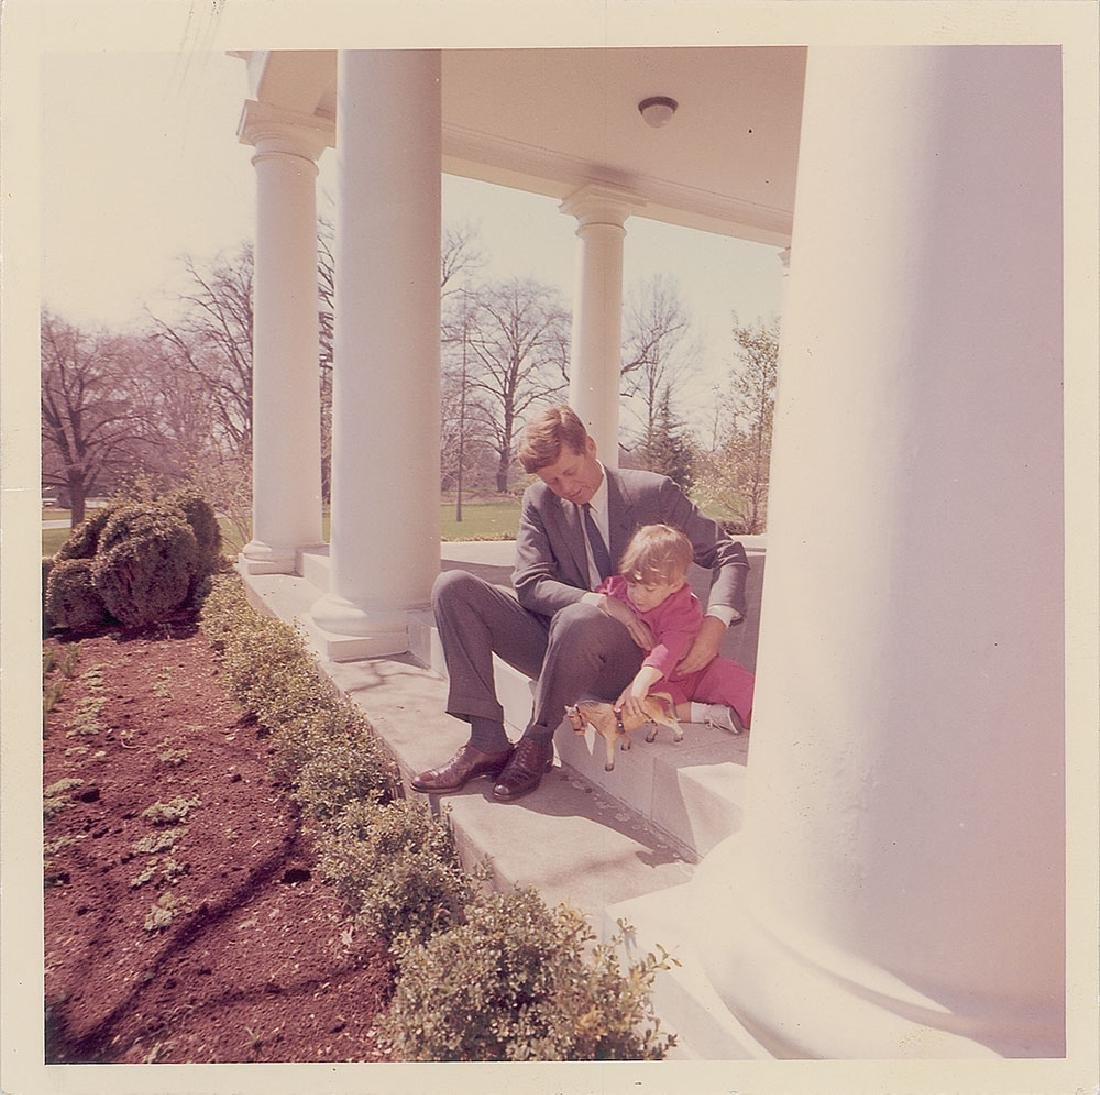 John F. Kennedy and John Jr. Original Vintage Photograph by Cecil Stoughton